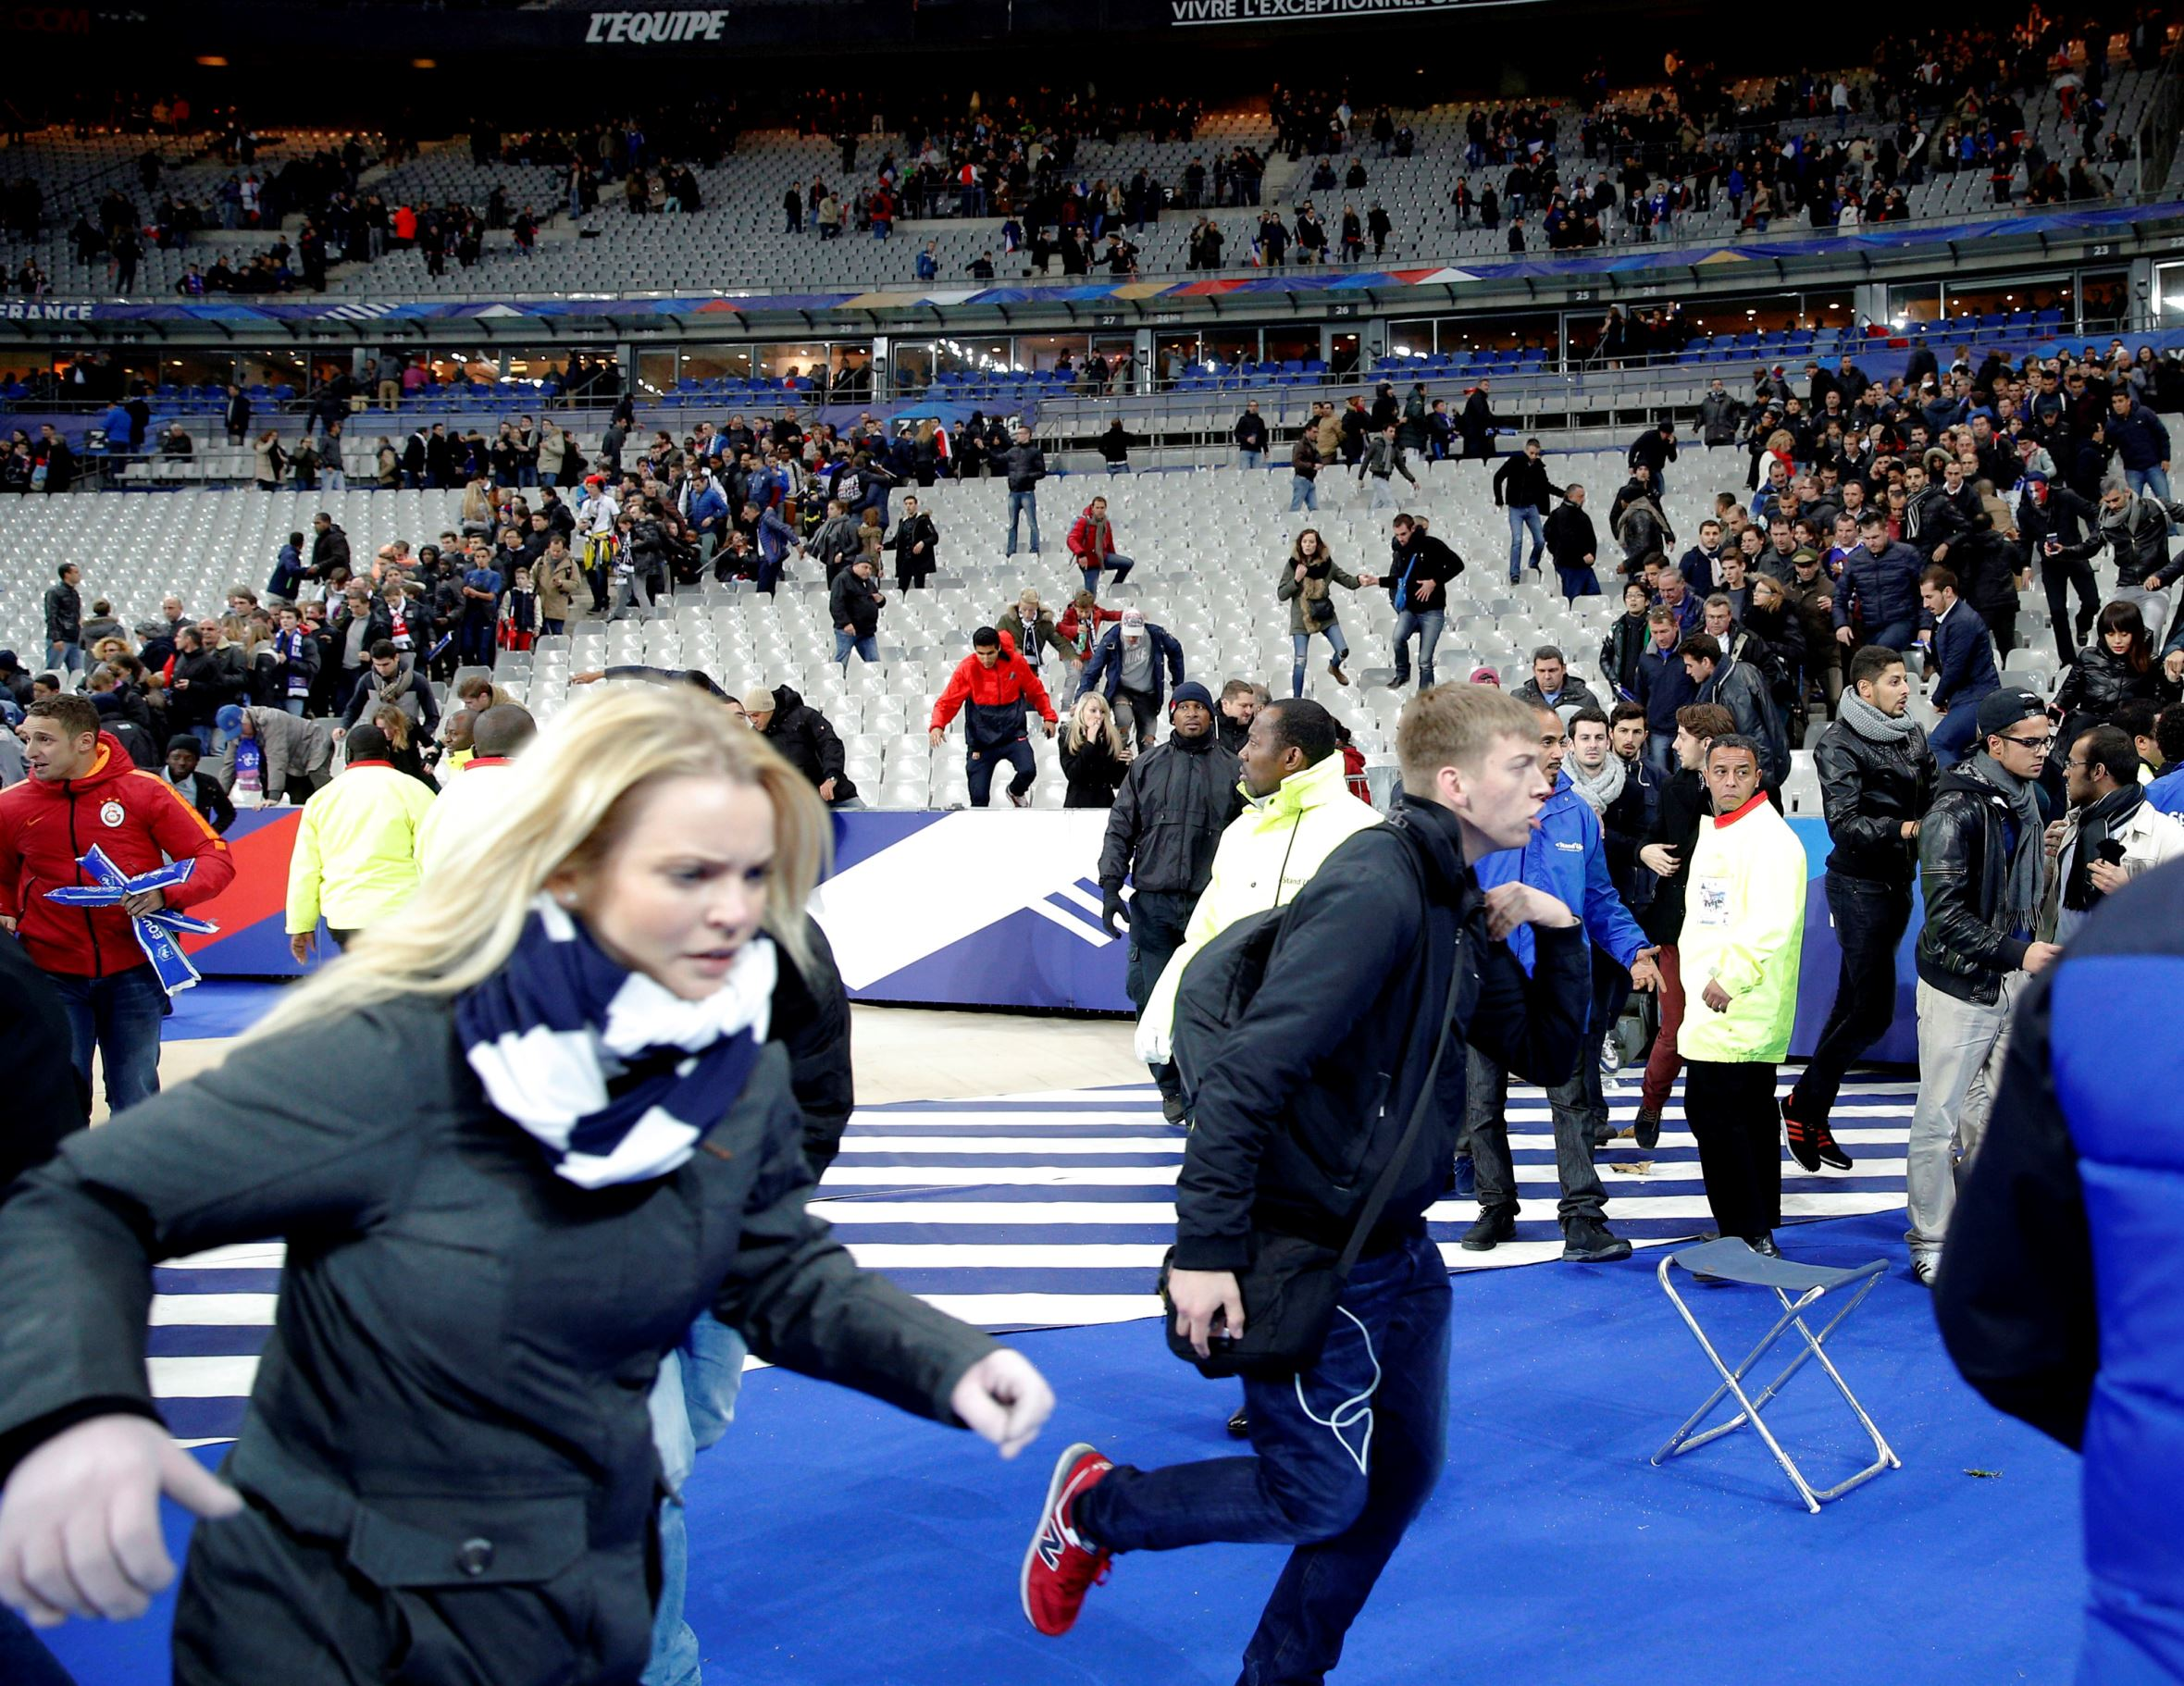 Spectators run onto the pitch of the Stade de France stadium after the international friendly soccer match between France and Germany in Saint Denis, outside Paris, on Nov. 13, 2015, after explosions were heard nearby.